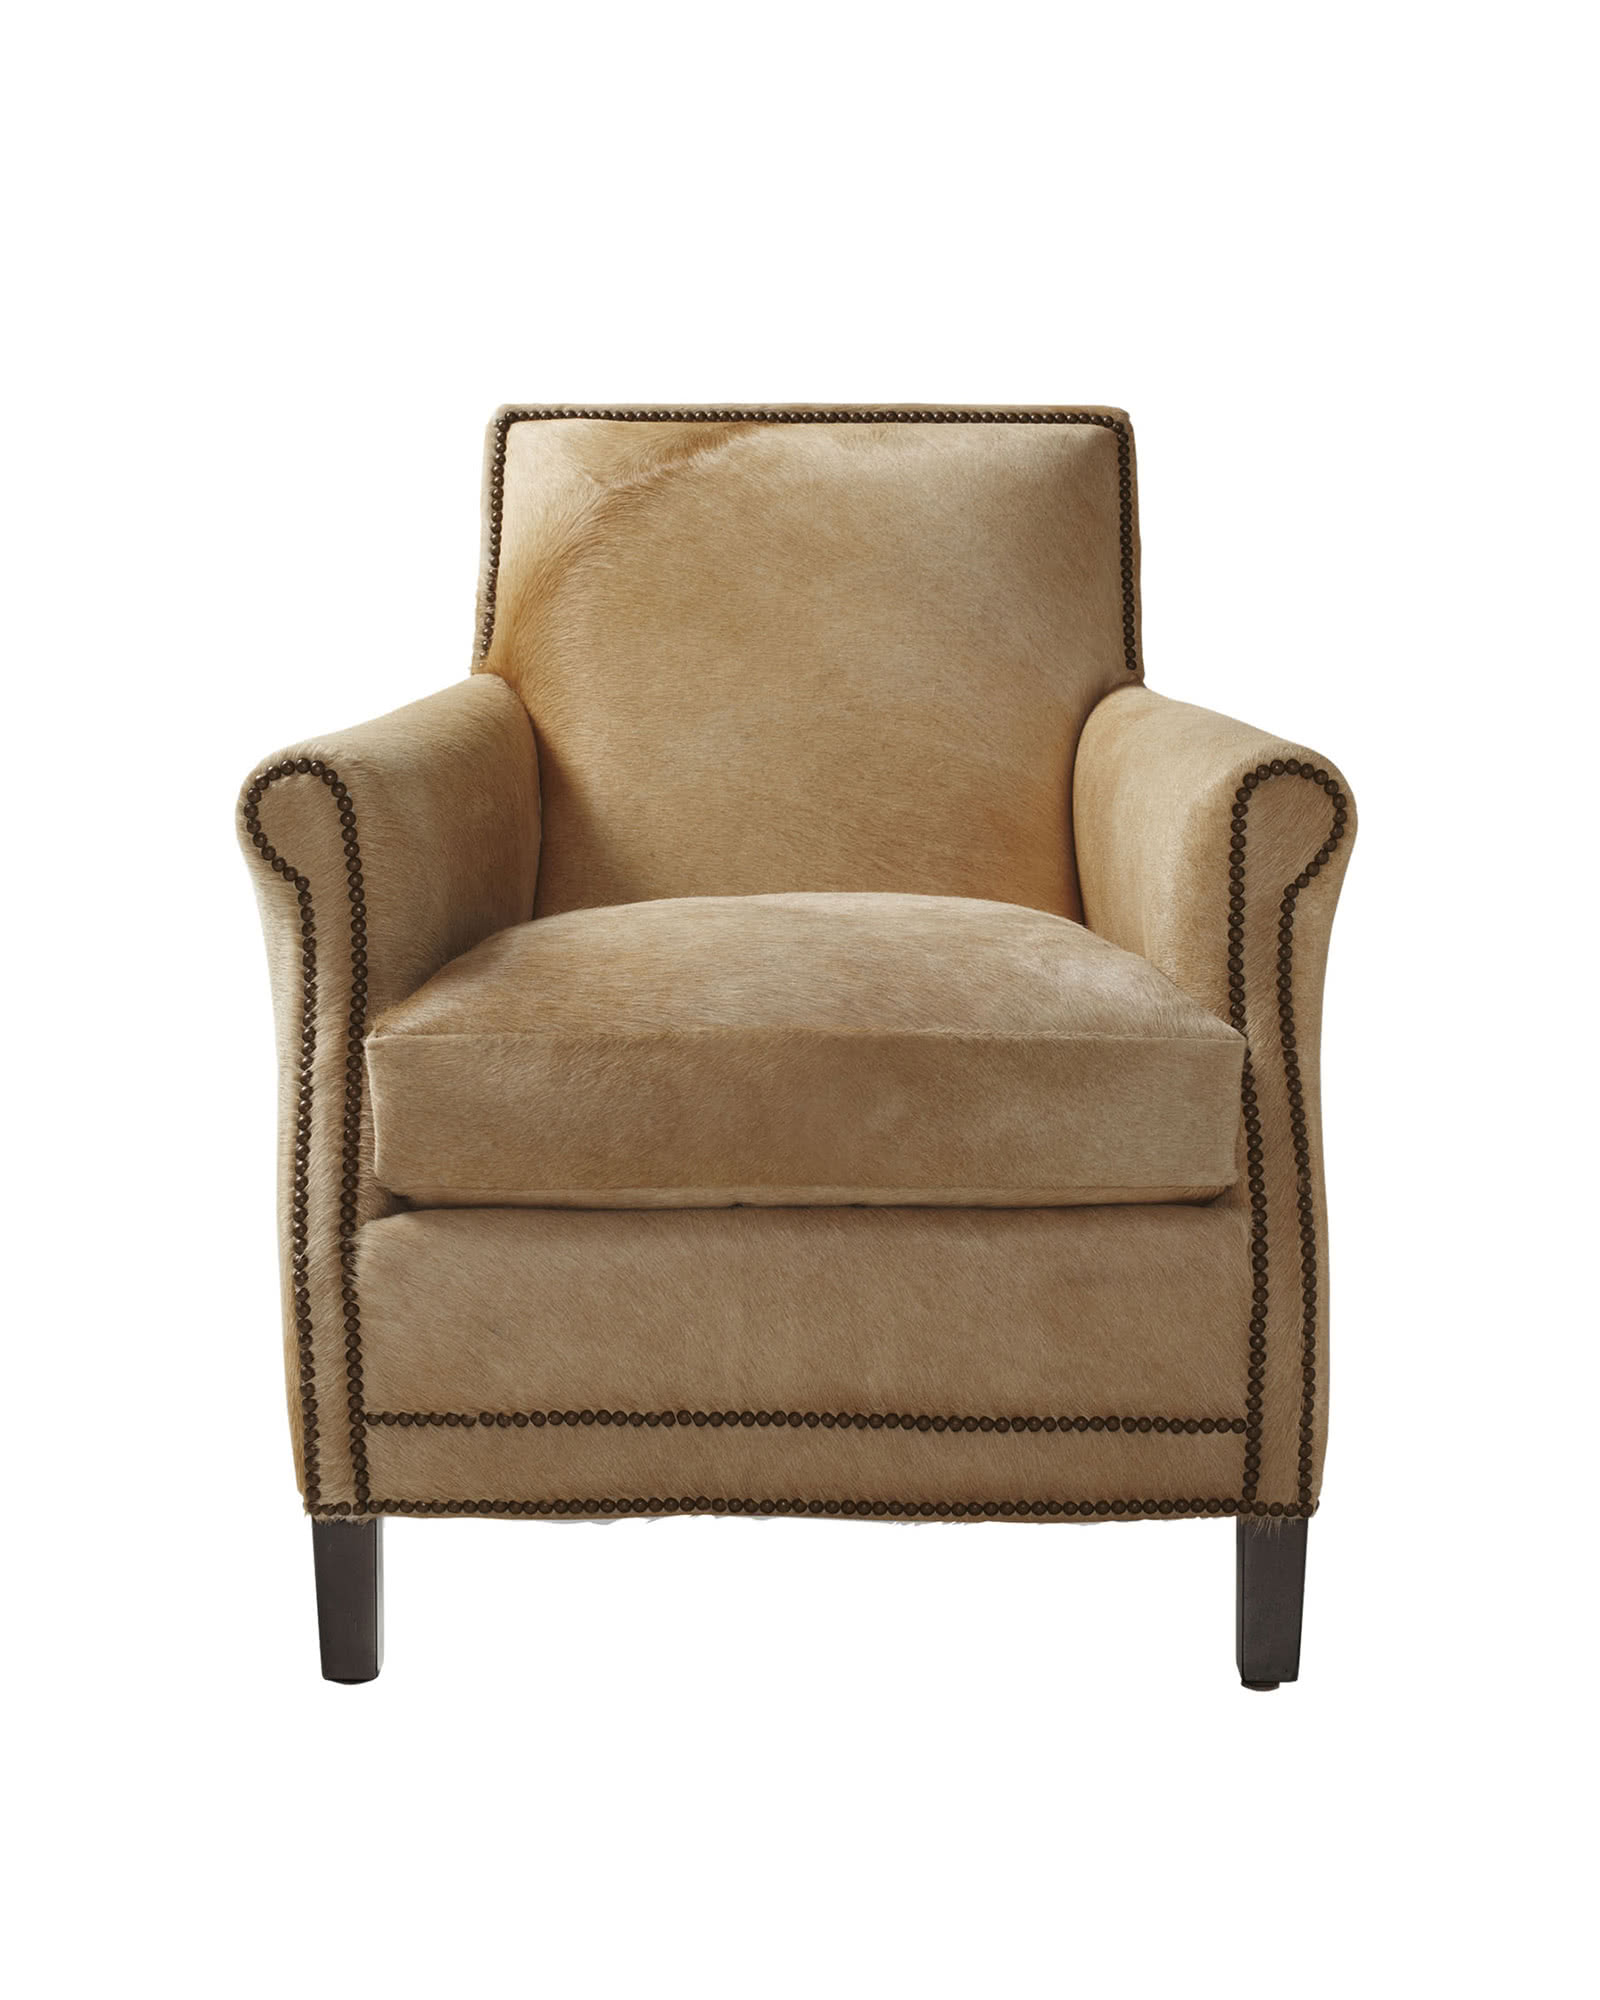 Canyon Chair - Hair on Hide, Beige